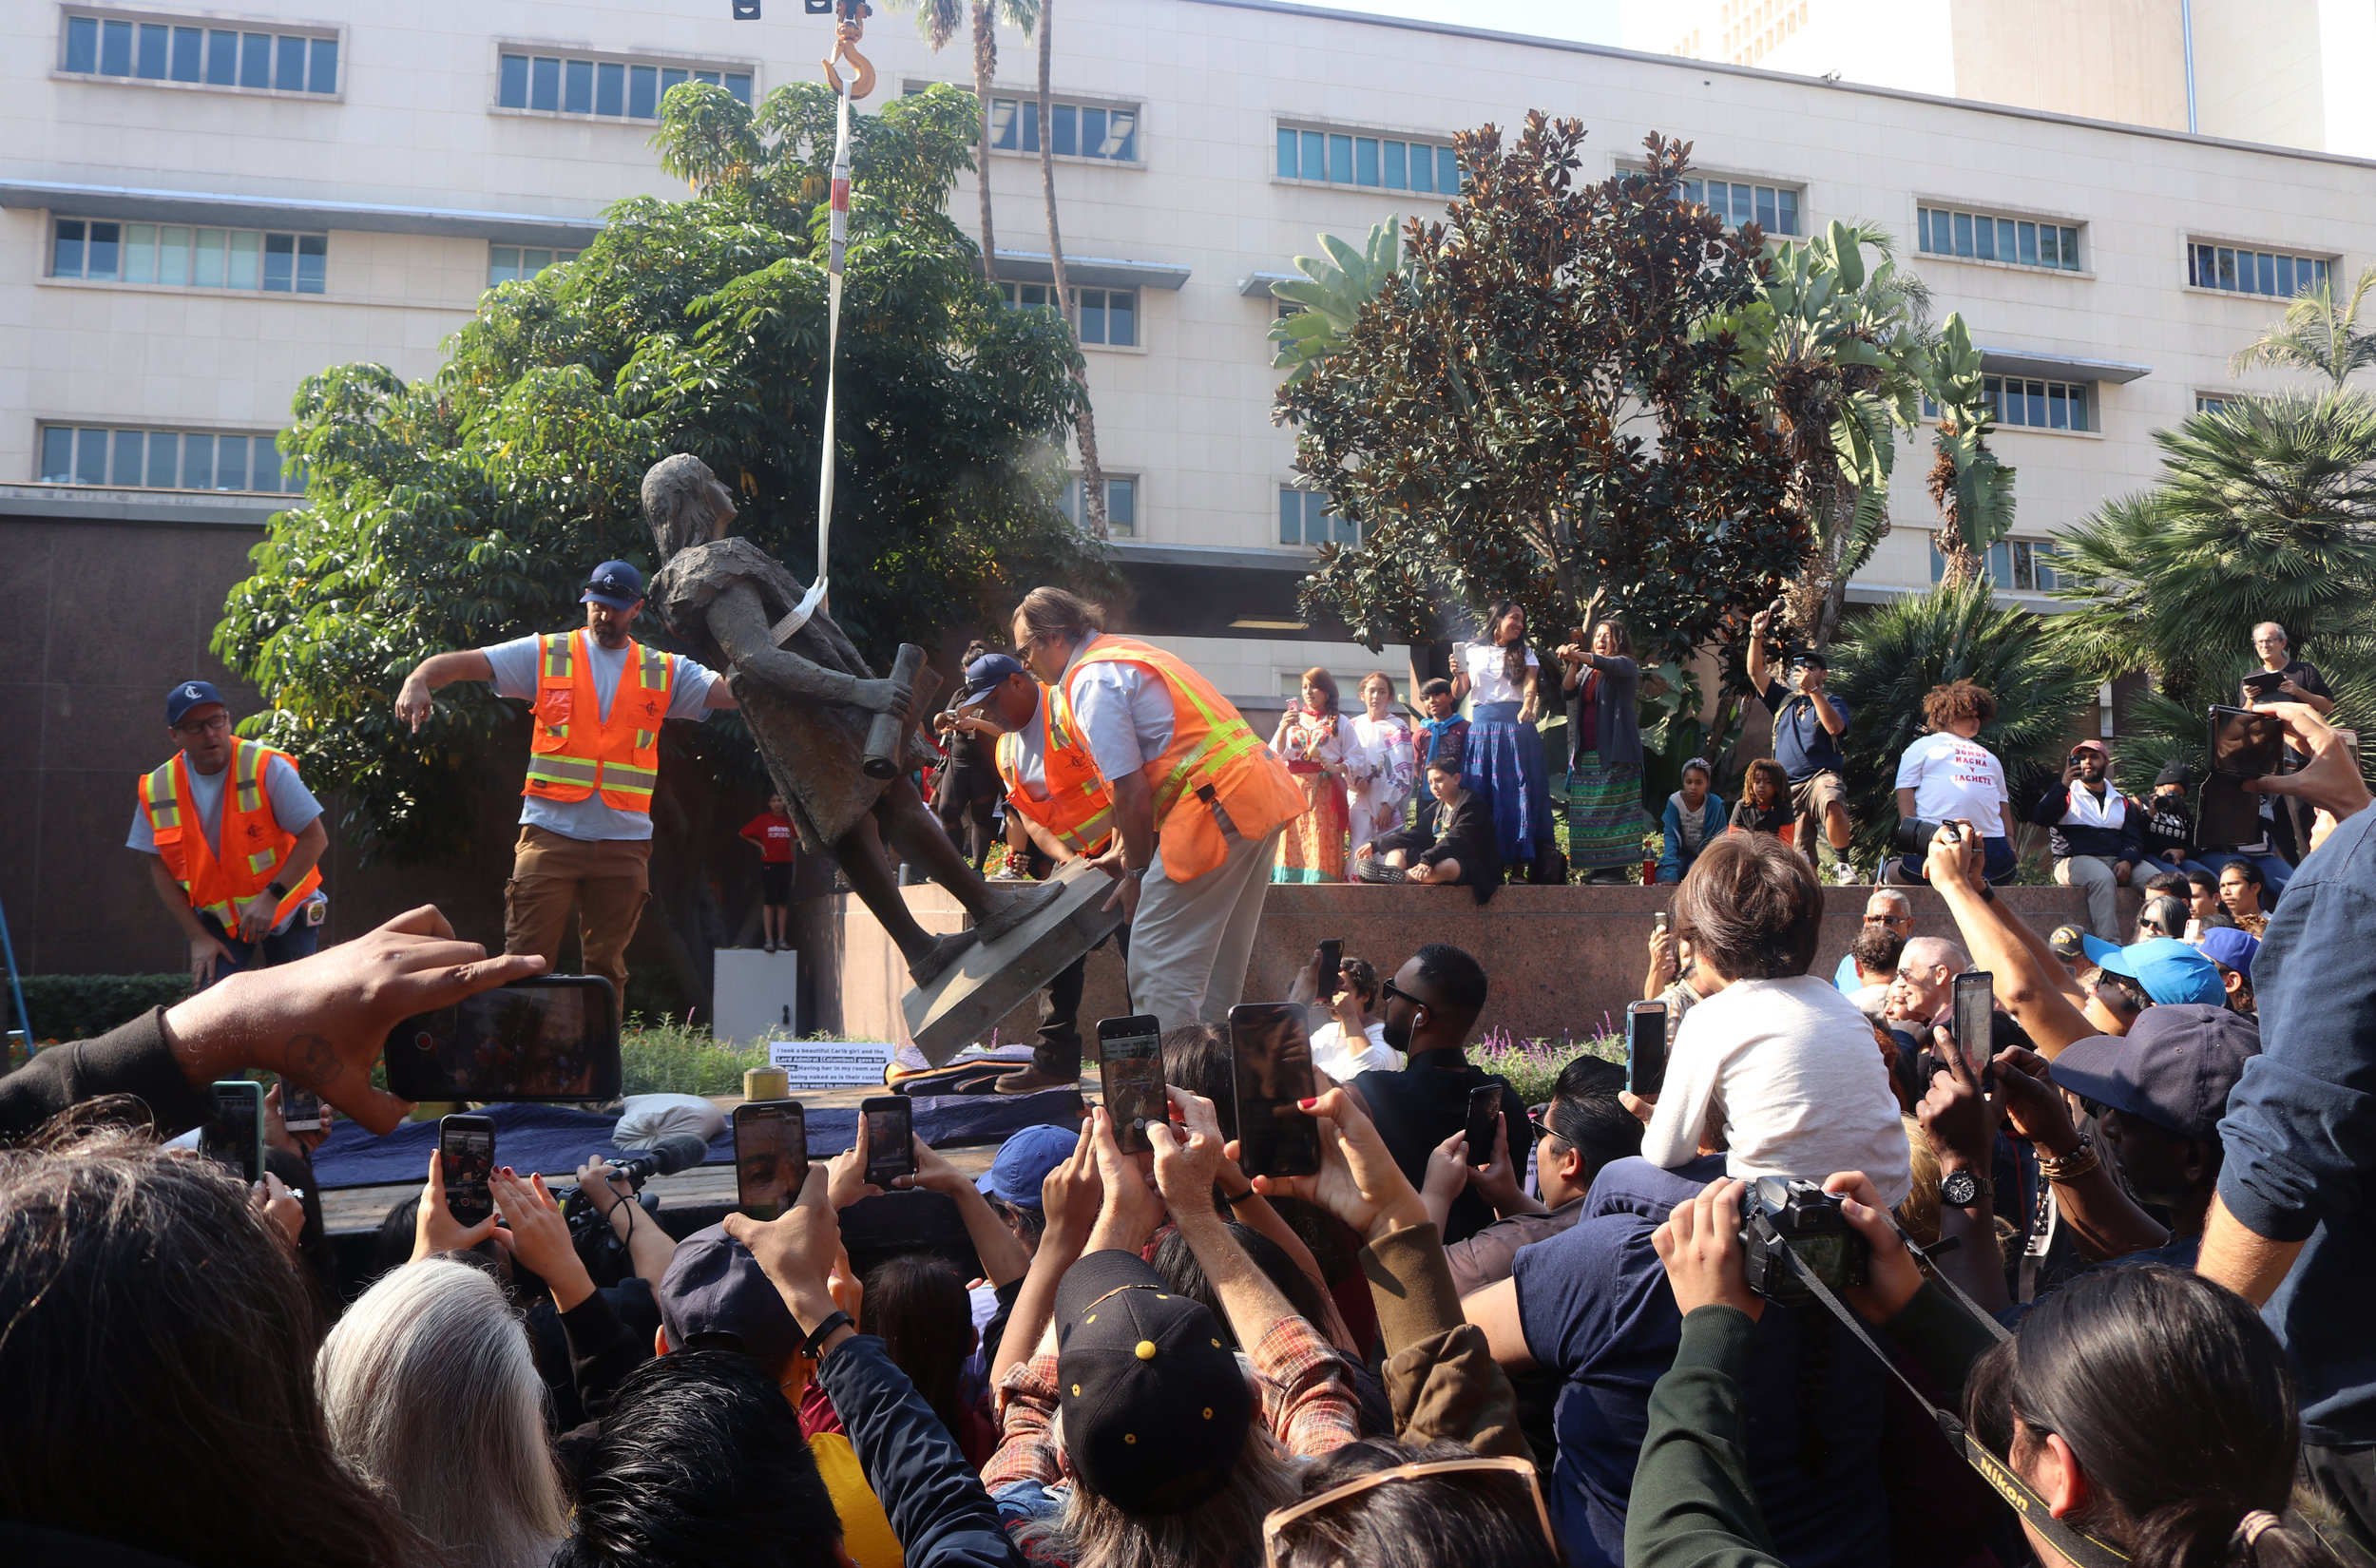 The removal of the Christopher Columbus statue. (Courtesy: Claire Heddles)